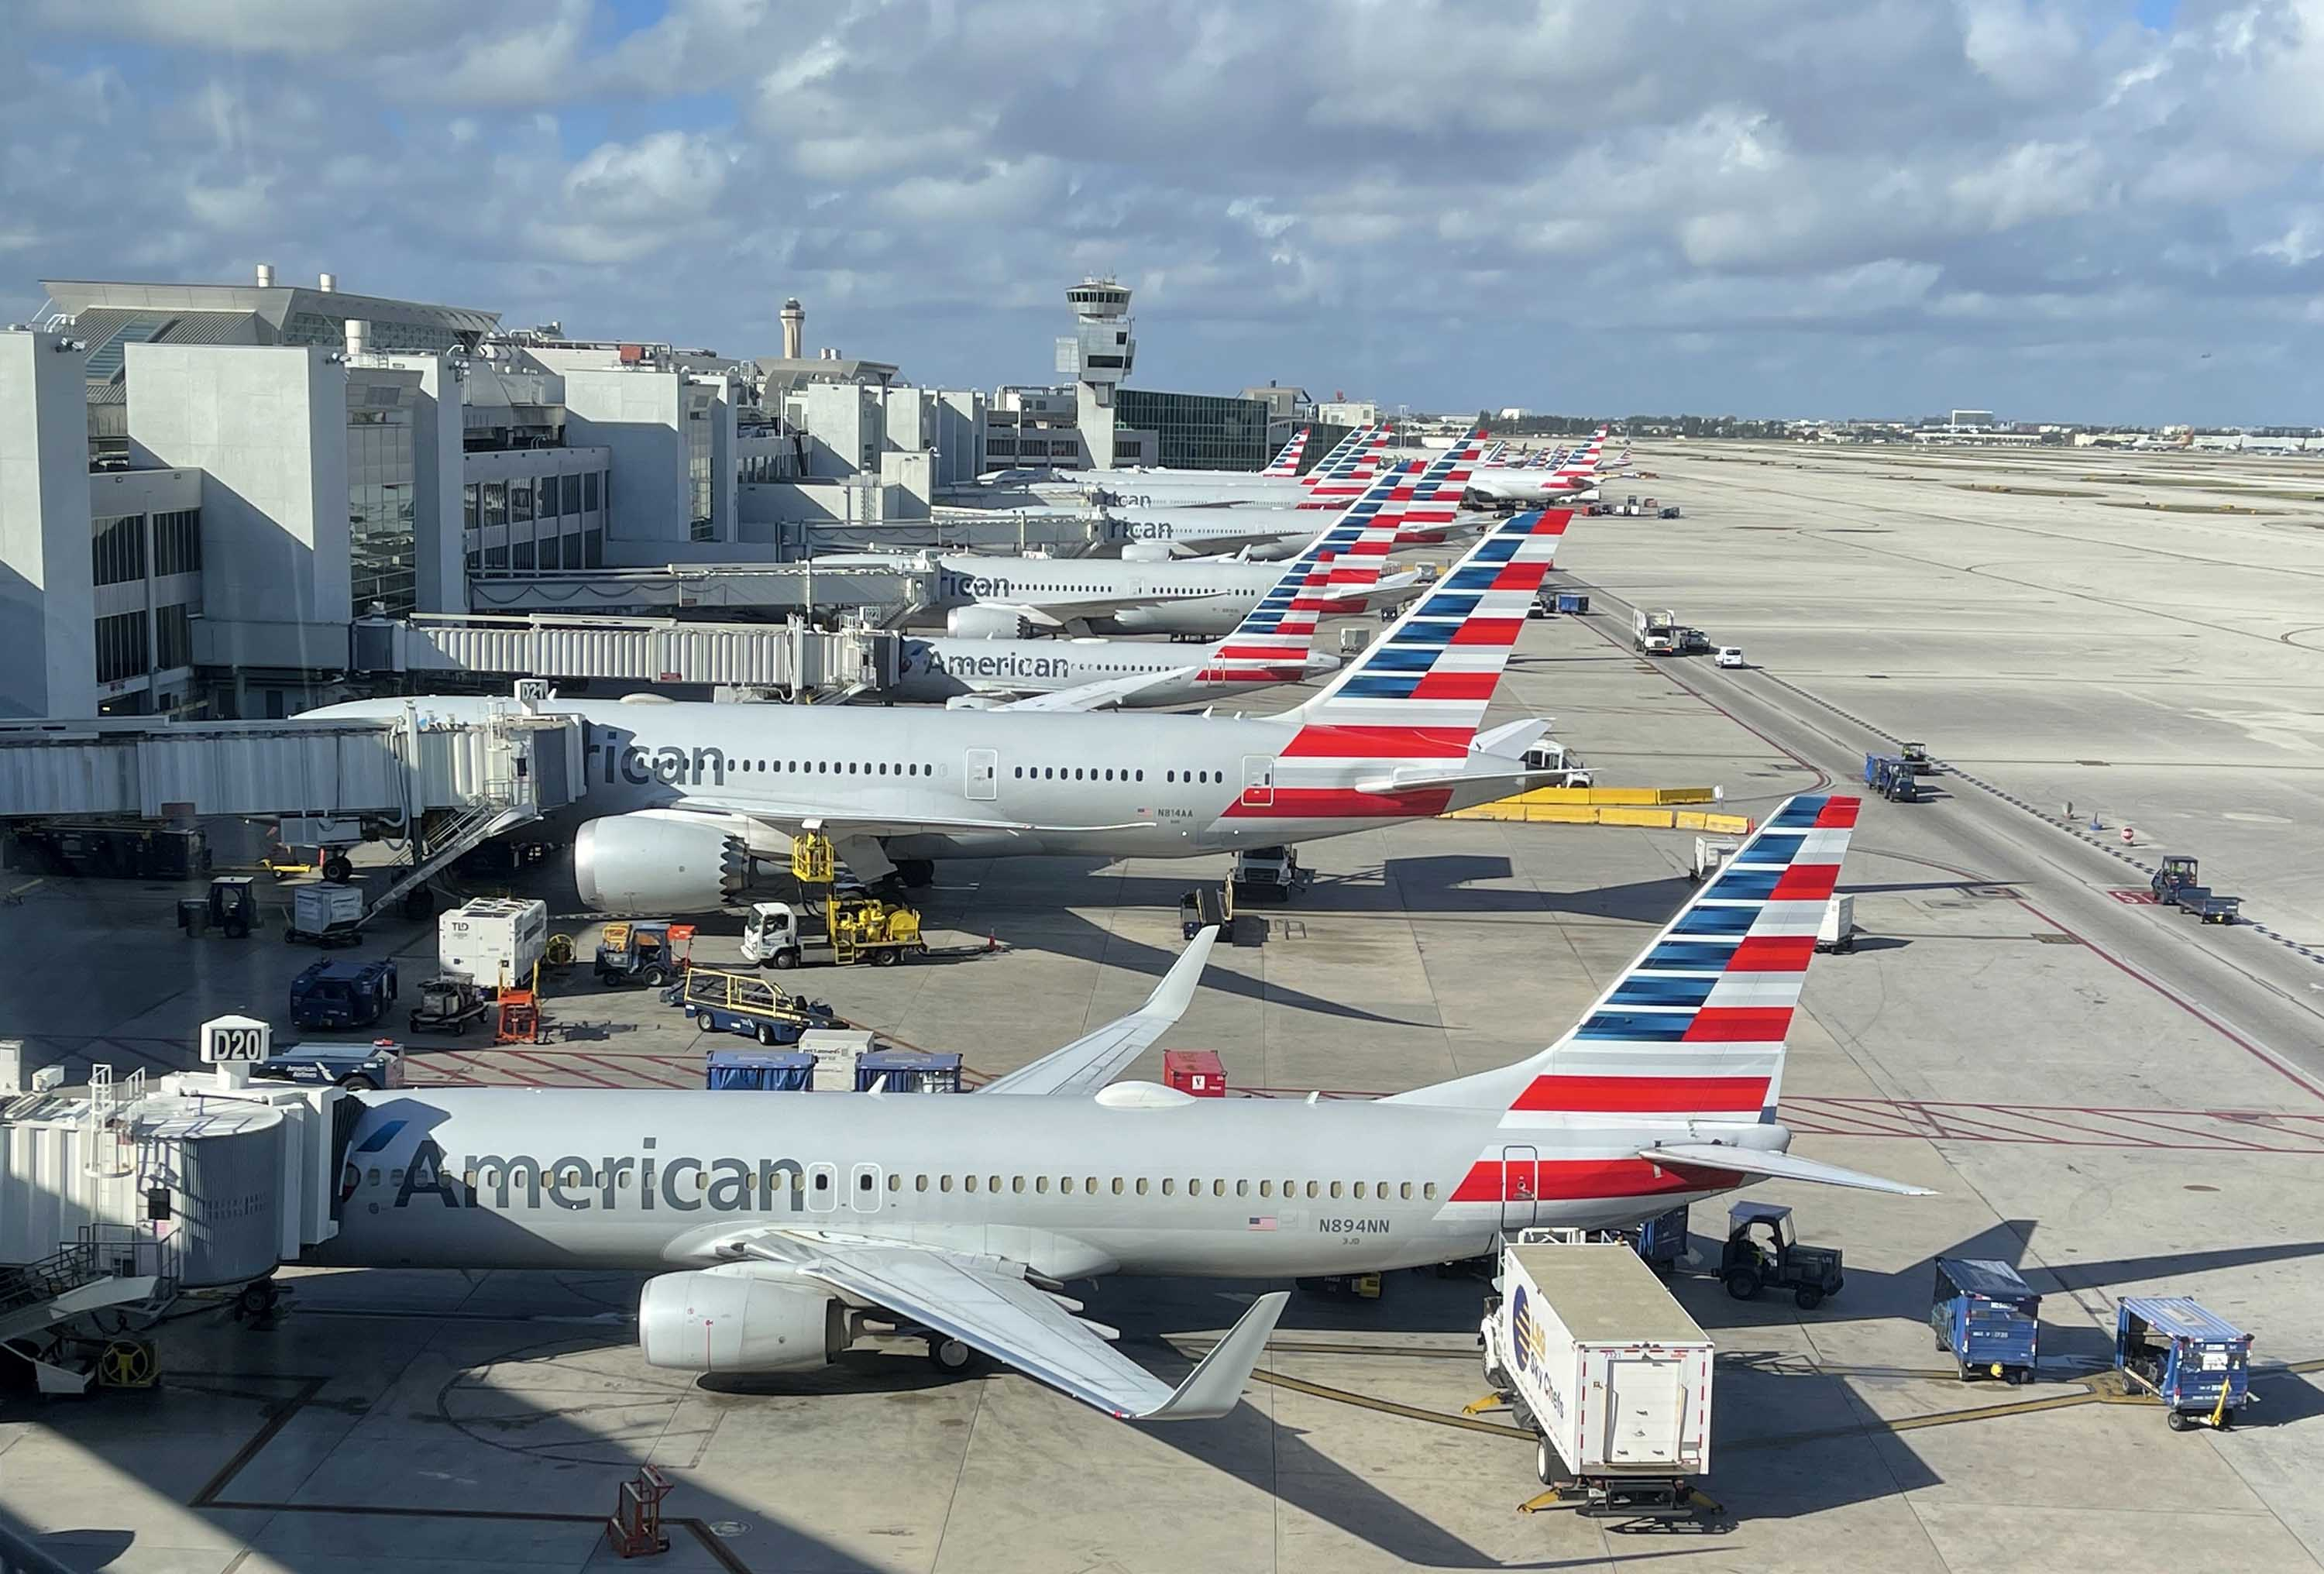 American Airlines planes are pictured at Miami International Airport on December 24, in Miami, Florida.